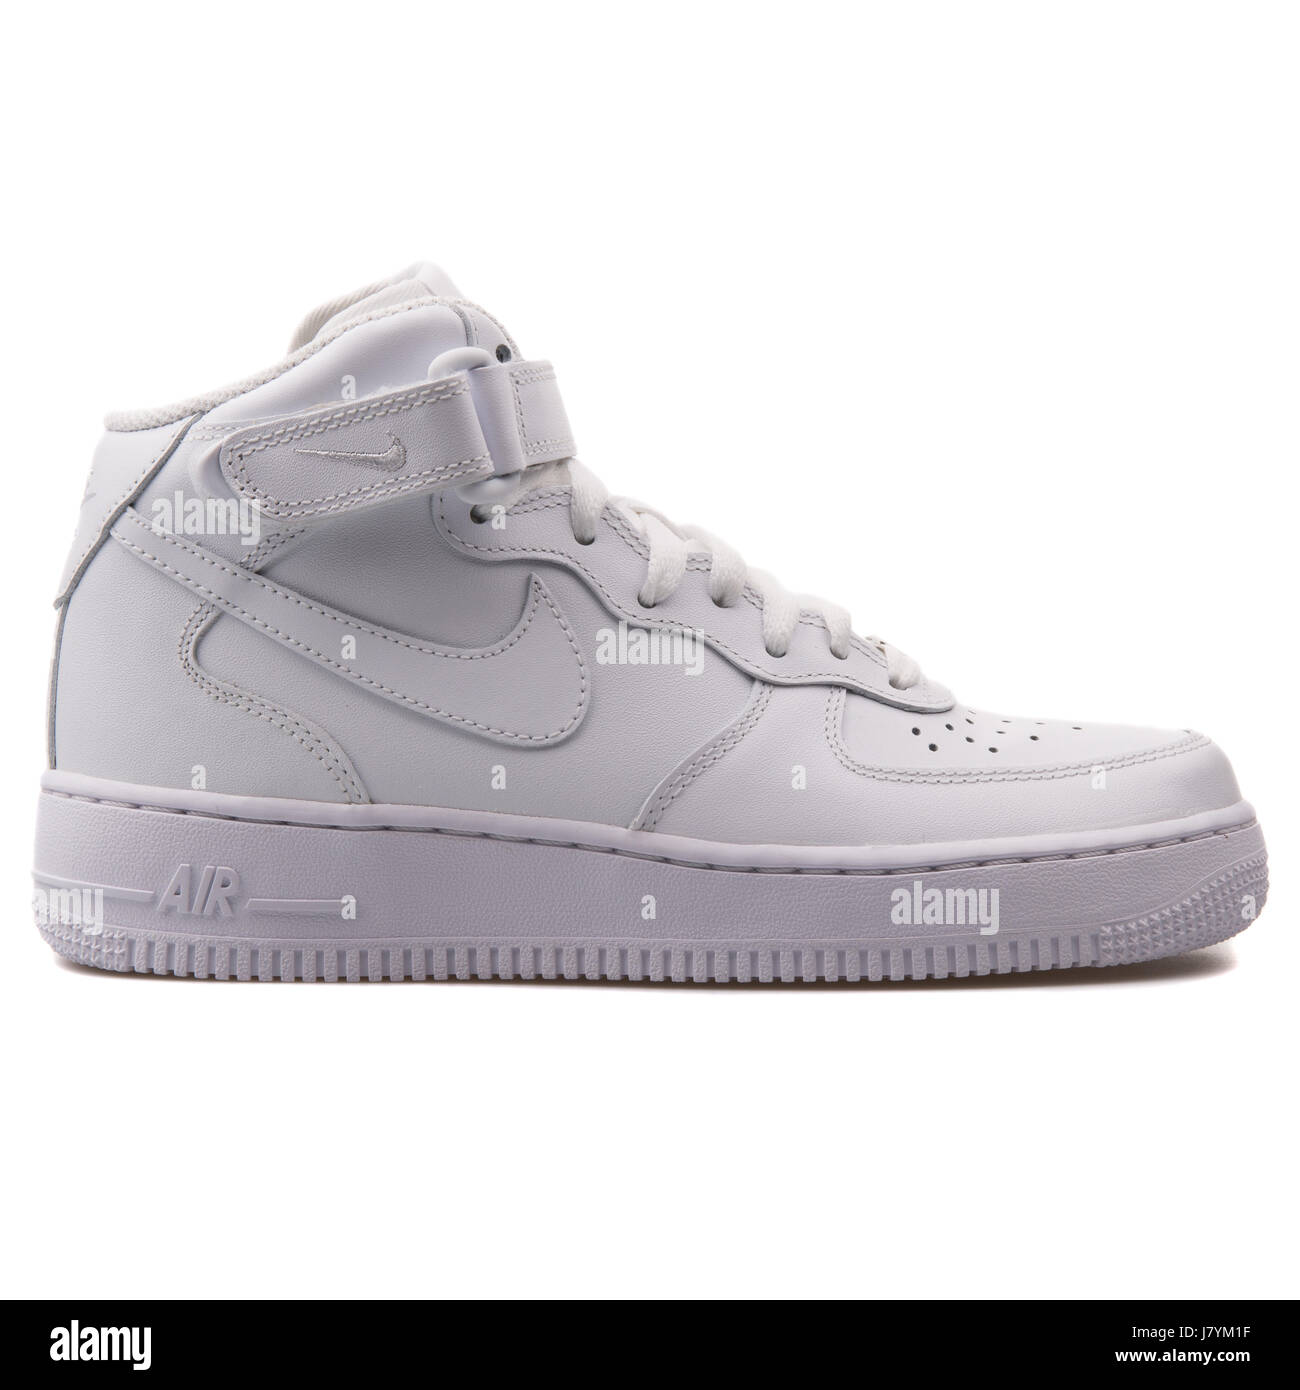 Nike WMNS Air Force 1 Mid  07 LE White Women s Sports Sneakers - 366731-100 ed05d07a4